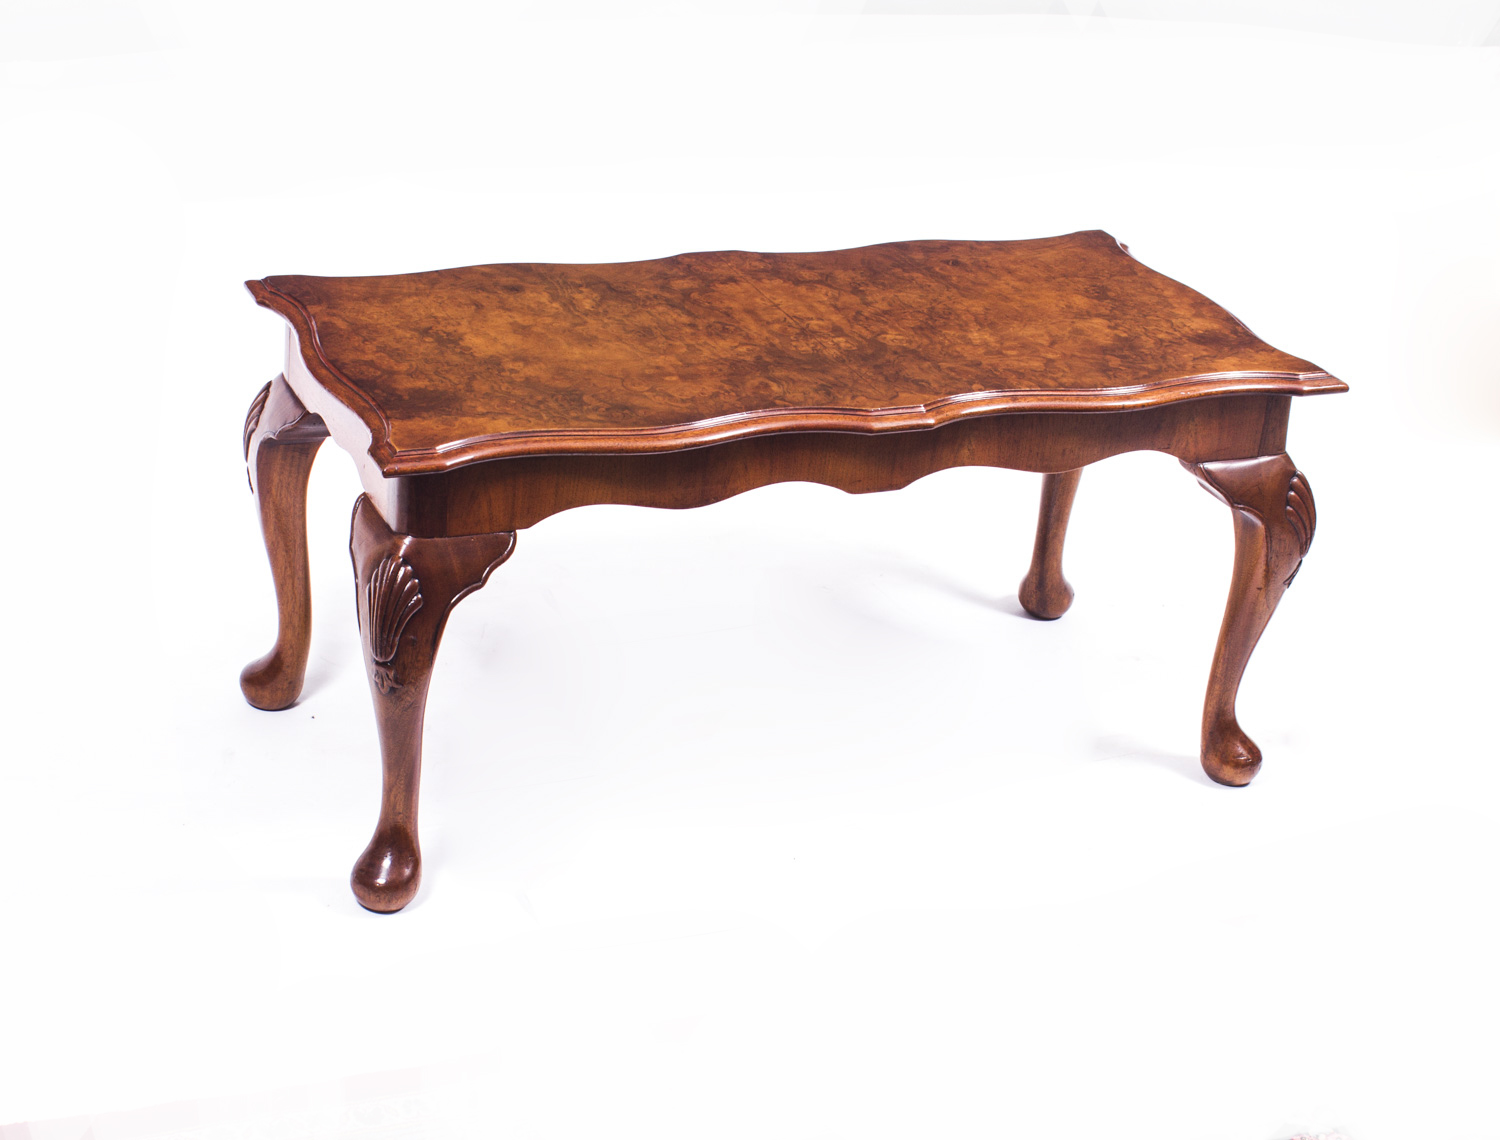 Vintage burr walnut queen anne style coffee table ref no 06764 Coffee table antique